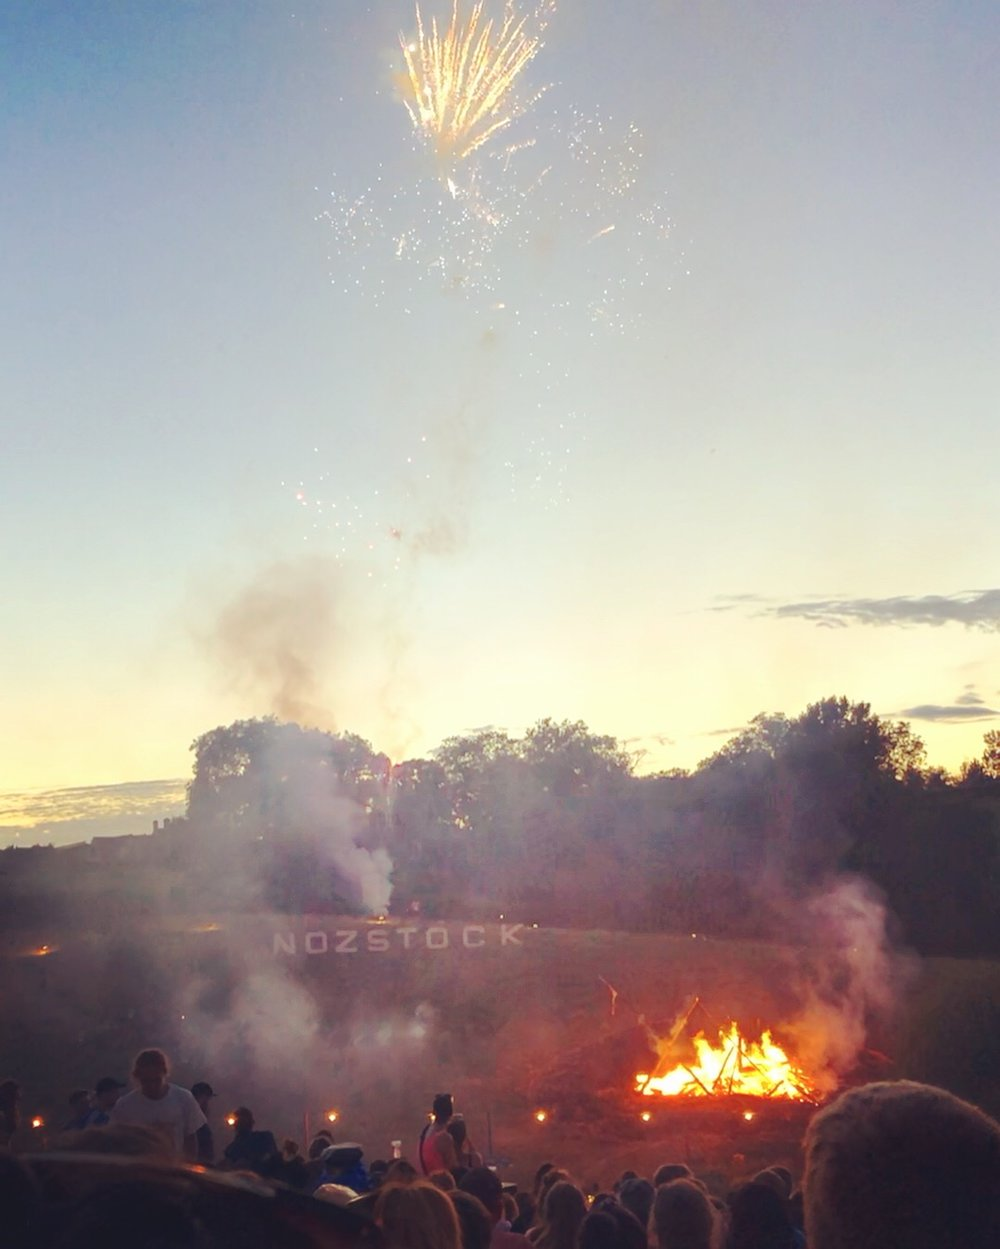 Nozstock's grand finale firework show on the Sunday night. The ashes of our neighbour's recently deceased father were sent up in a rocket. Testimony to how much love there is for this family festival.